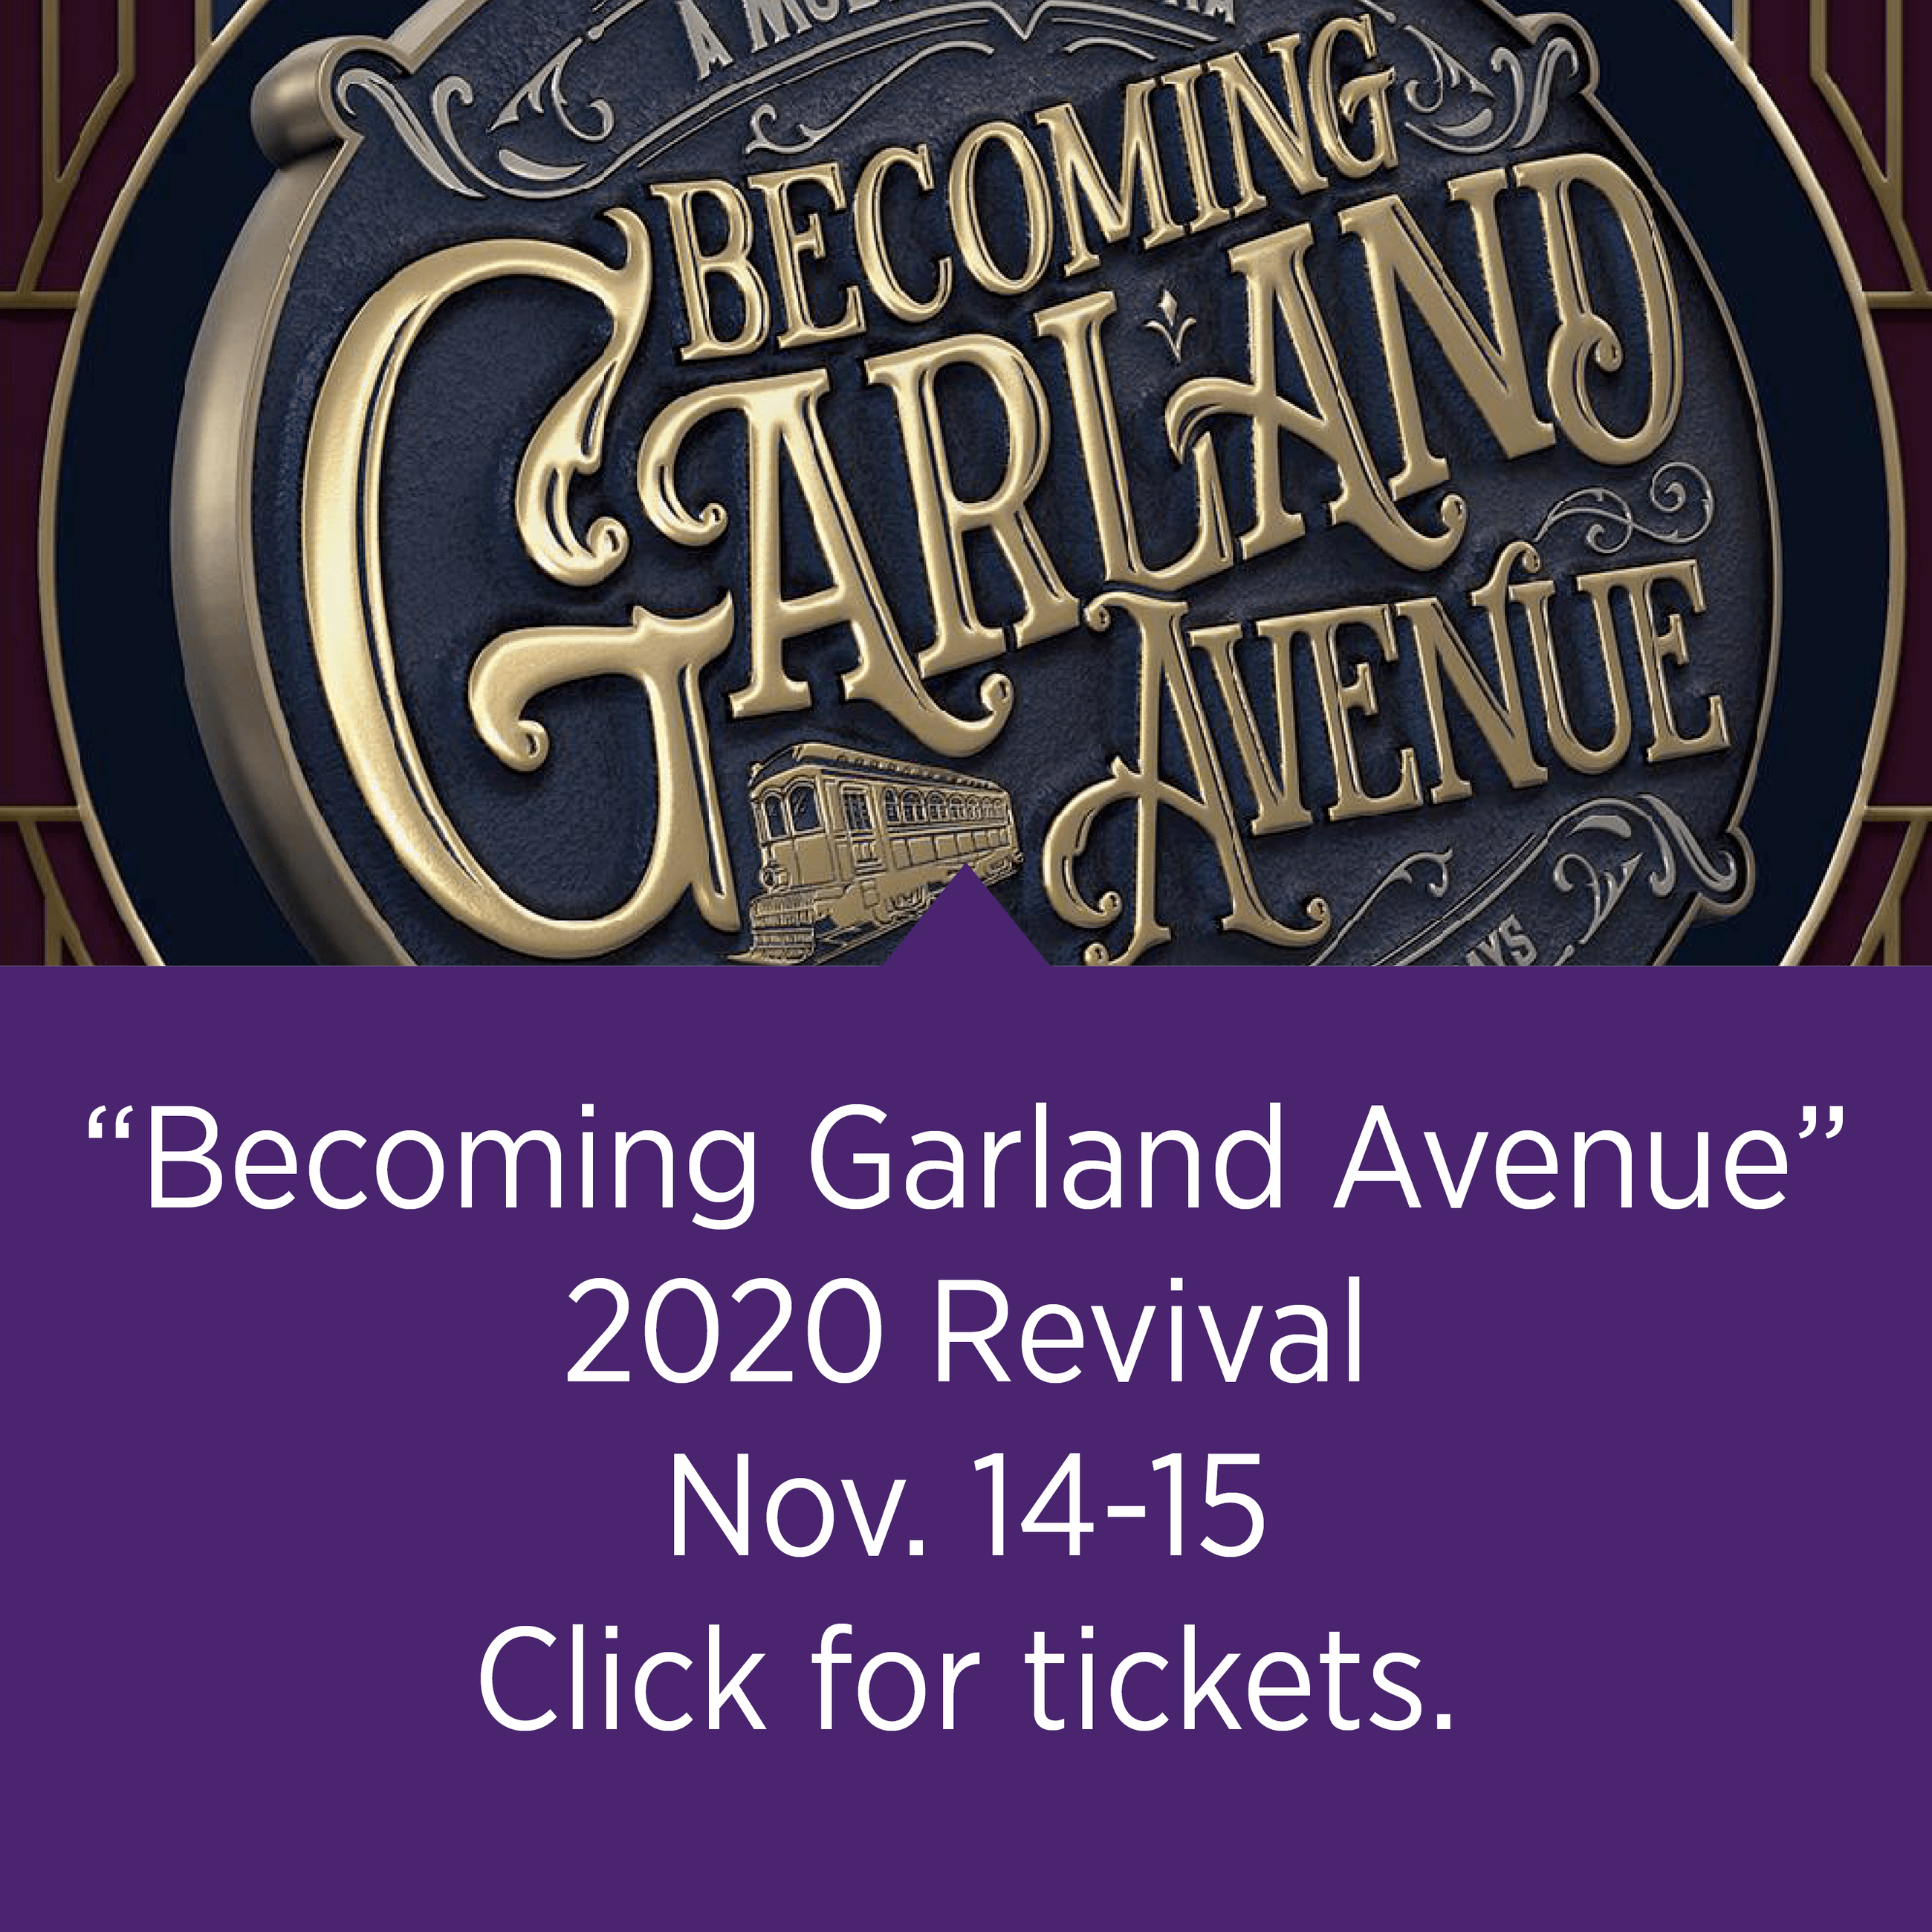 """Becoming Garland Avenue"" (2020 Revival) - Click for tickets."